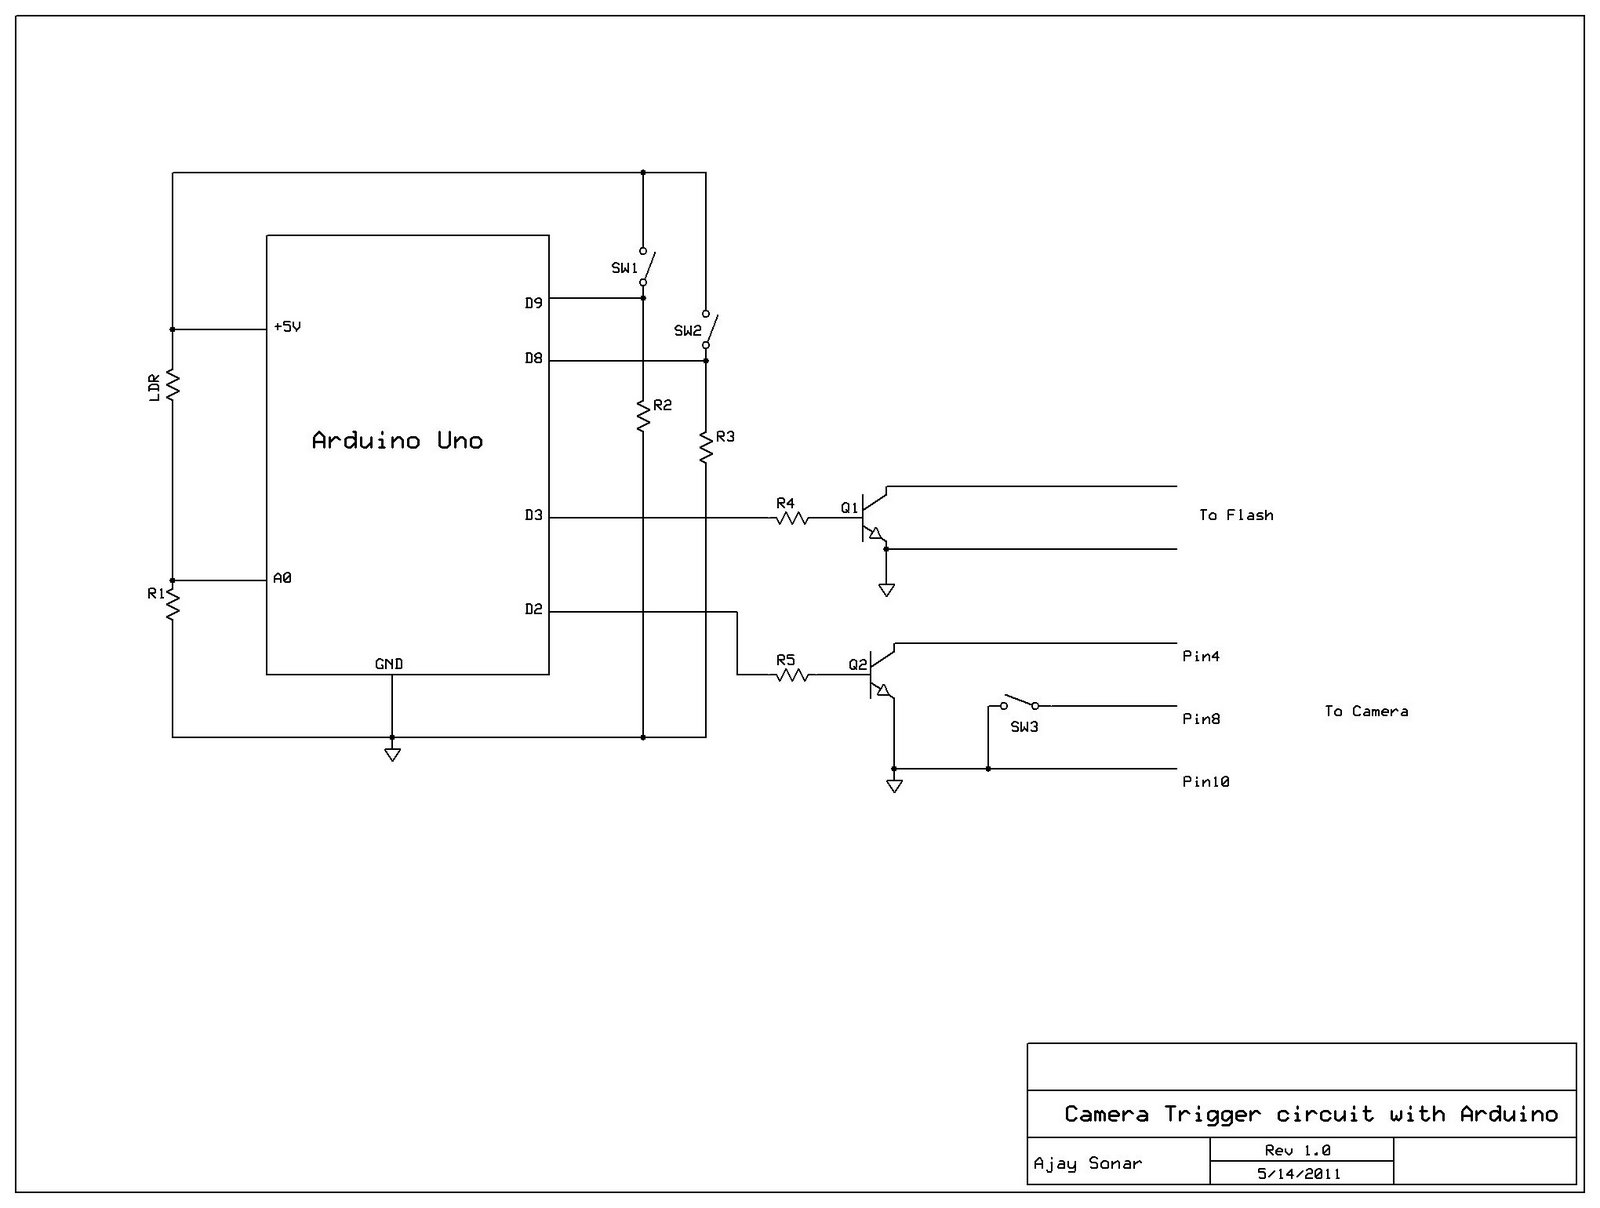 Photoelectric Switch Wiring Diagram With Ballast. Photocell Wiring Diagram And Hernes For Metal Halide Ballast Solidfonts. Wiring. Photocell With Metal Halide Ballast Wiring Diagram At Scoala.co